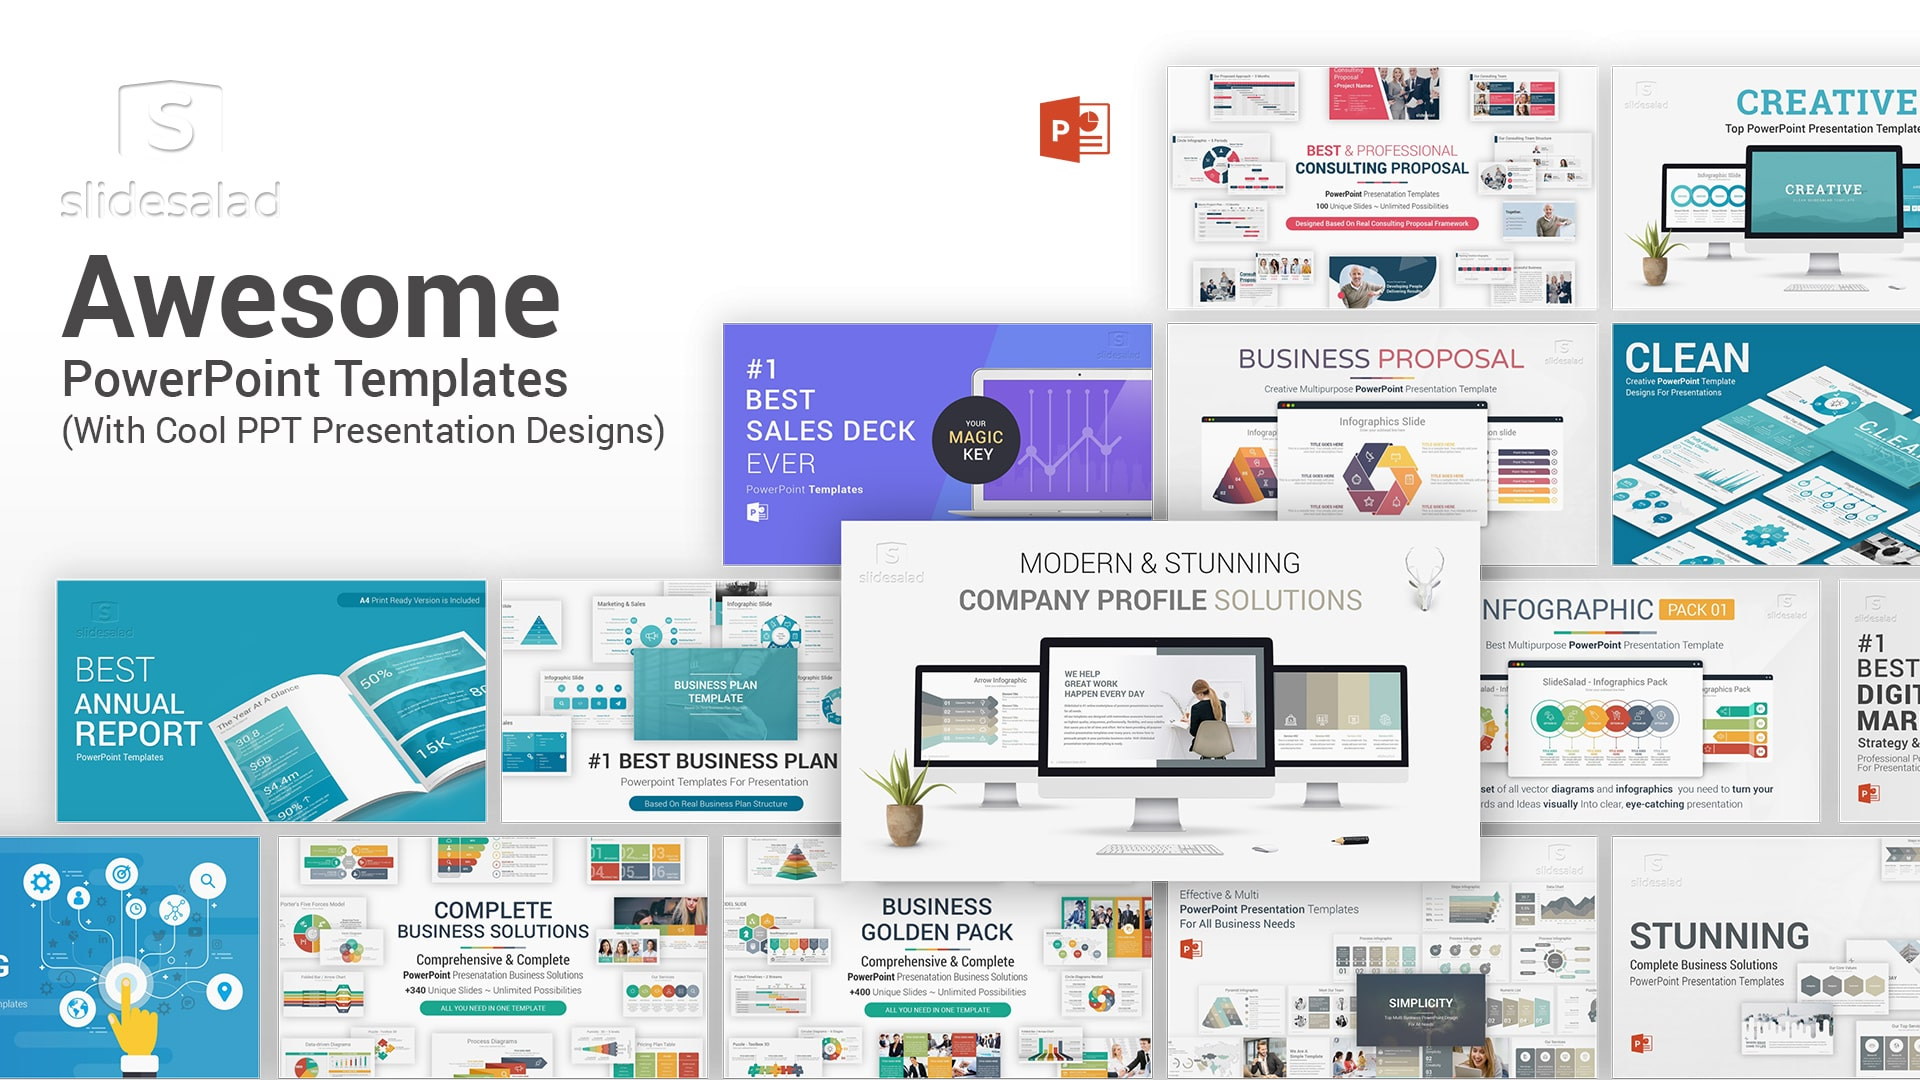 Awesome PowerPoint Templates for PPT Presentations